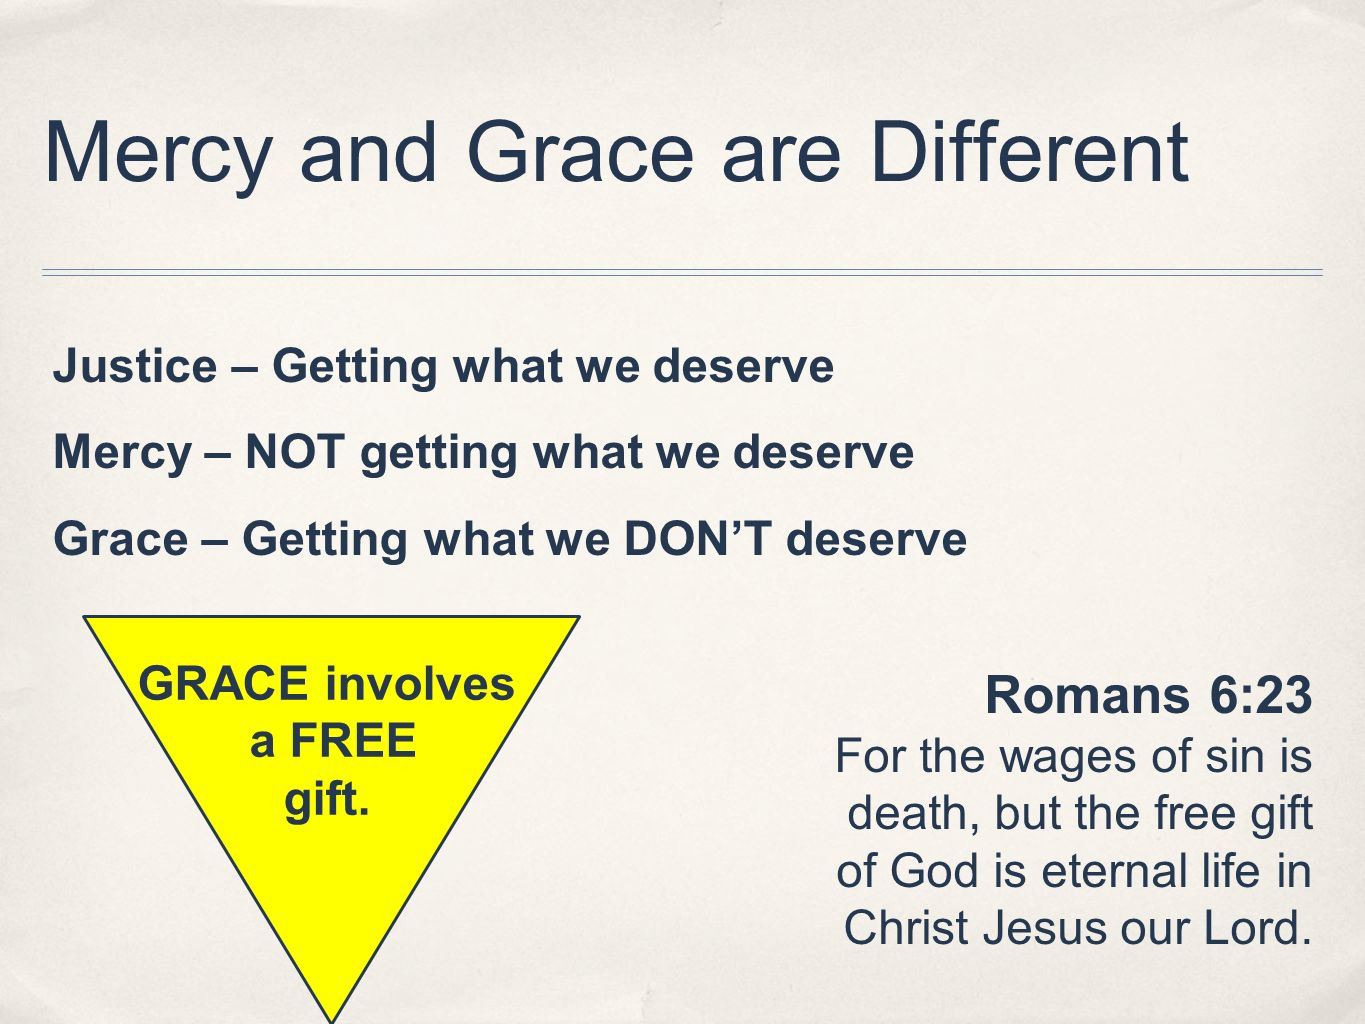 Mercy and Grace are Different